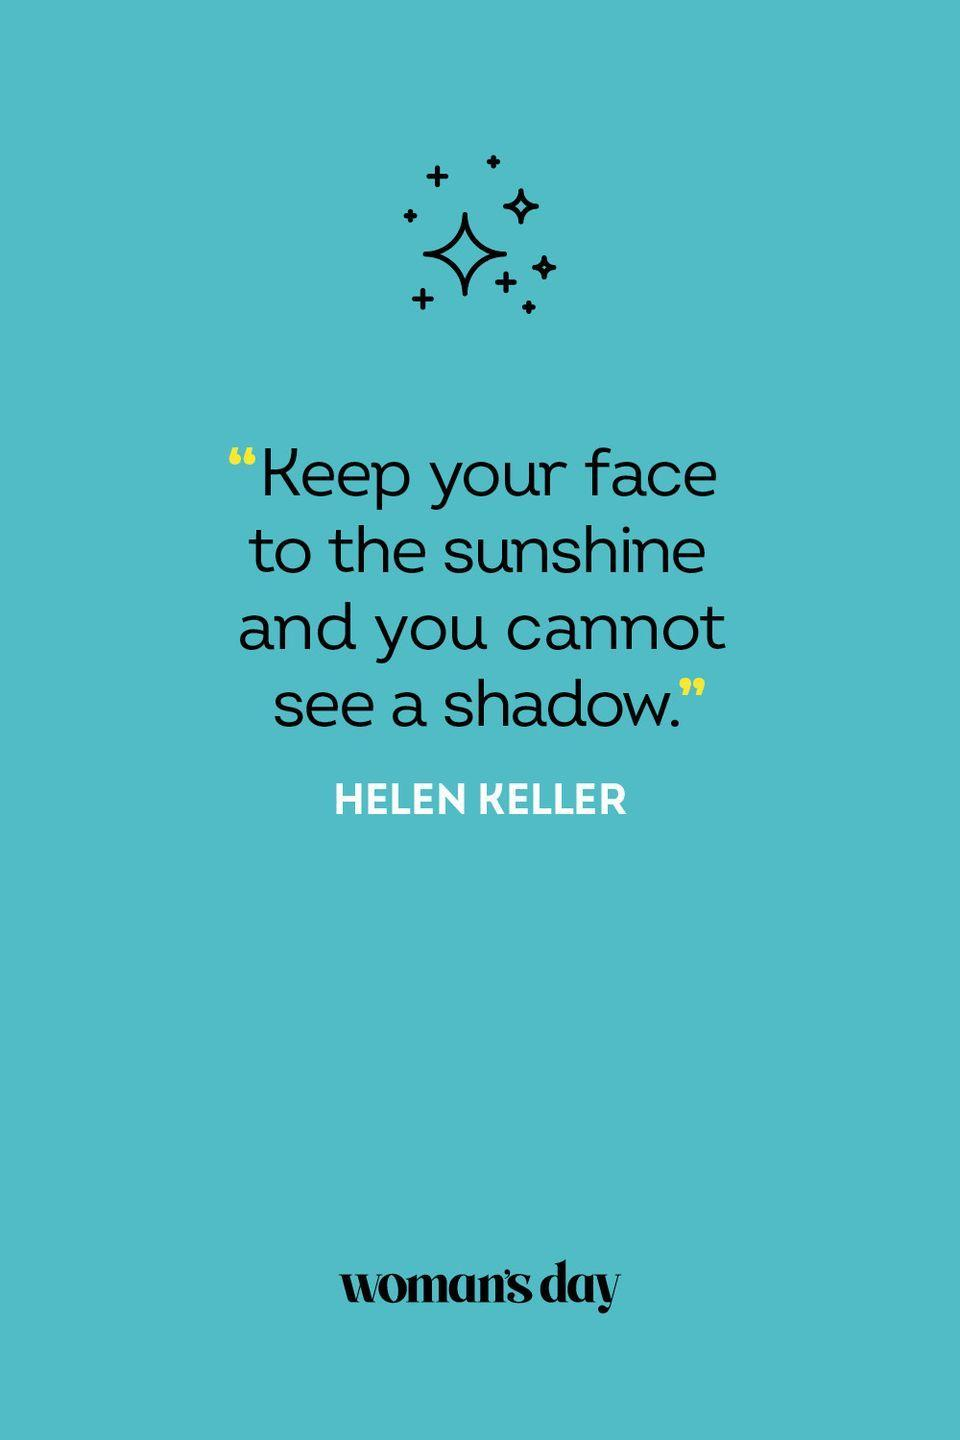 <p>Keep your face to the sunshine and you cannot see a shadow.</p>